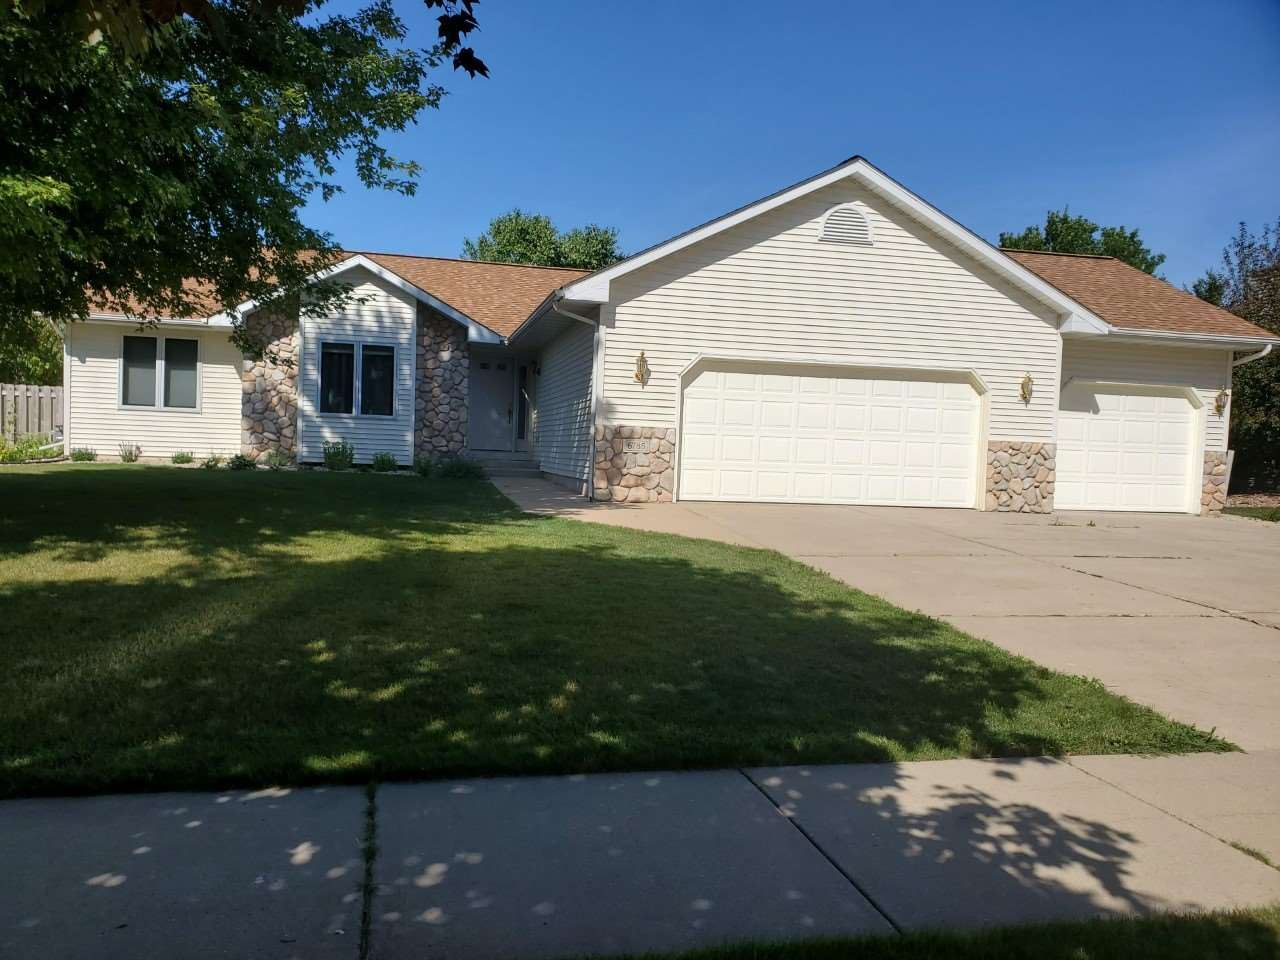 6785 Valiant Dr, Windsor, WI 53598 - #: 1893814